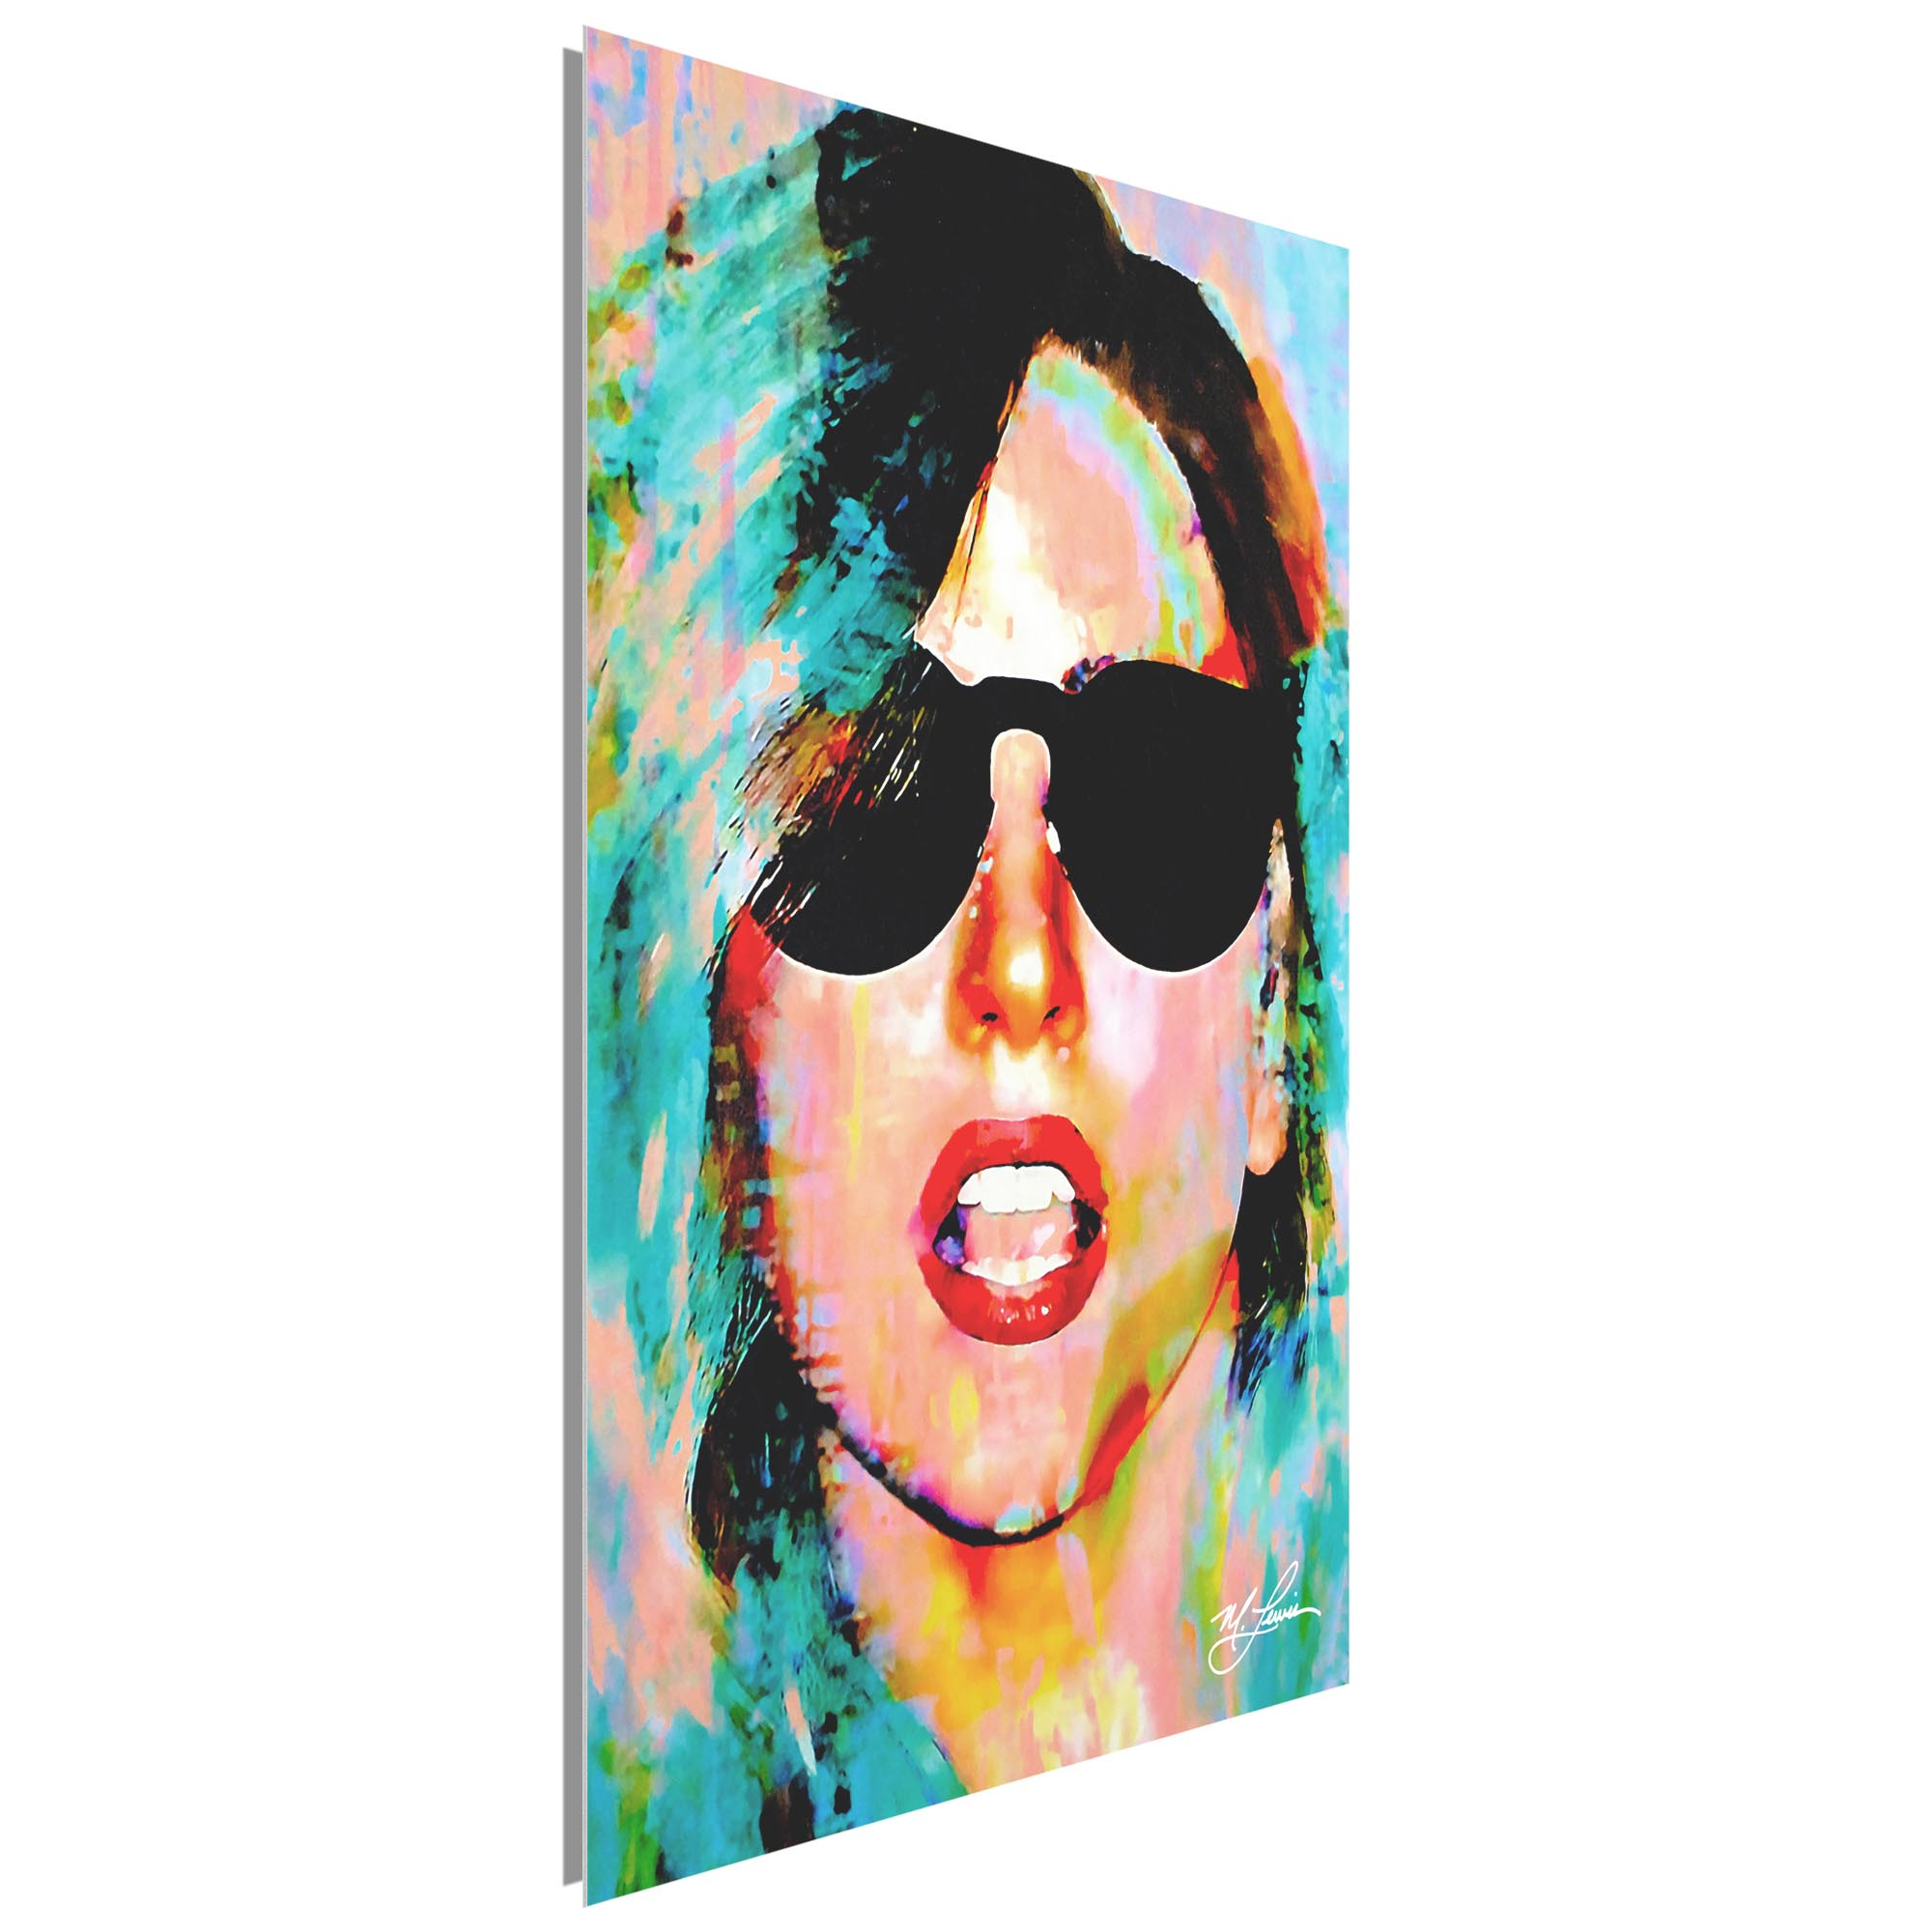 Lady Gaga Everyday Art 22x32 Metal or Plexiglass Pop Art Portrait - Image 2